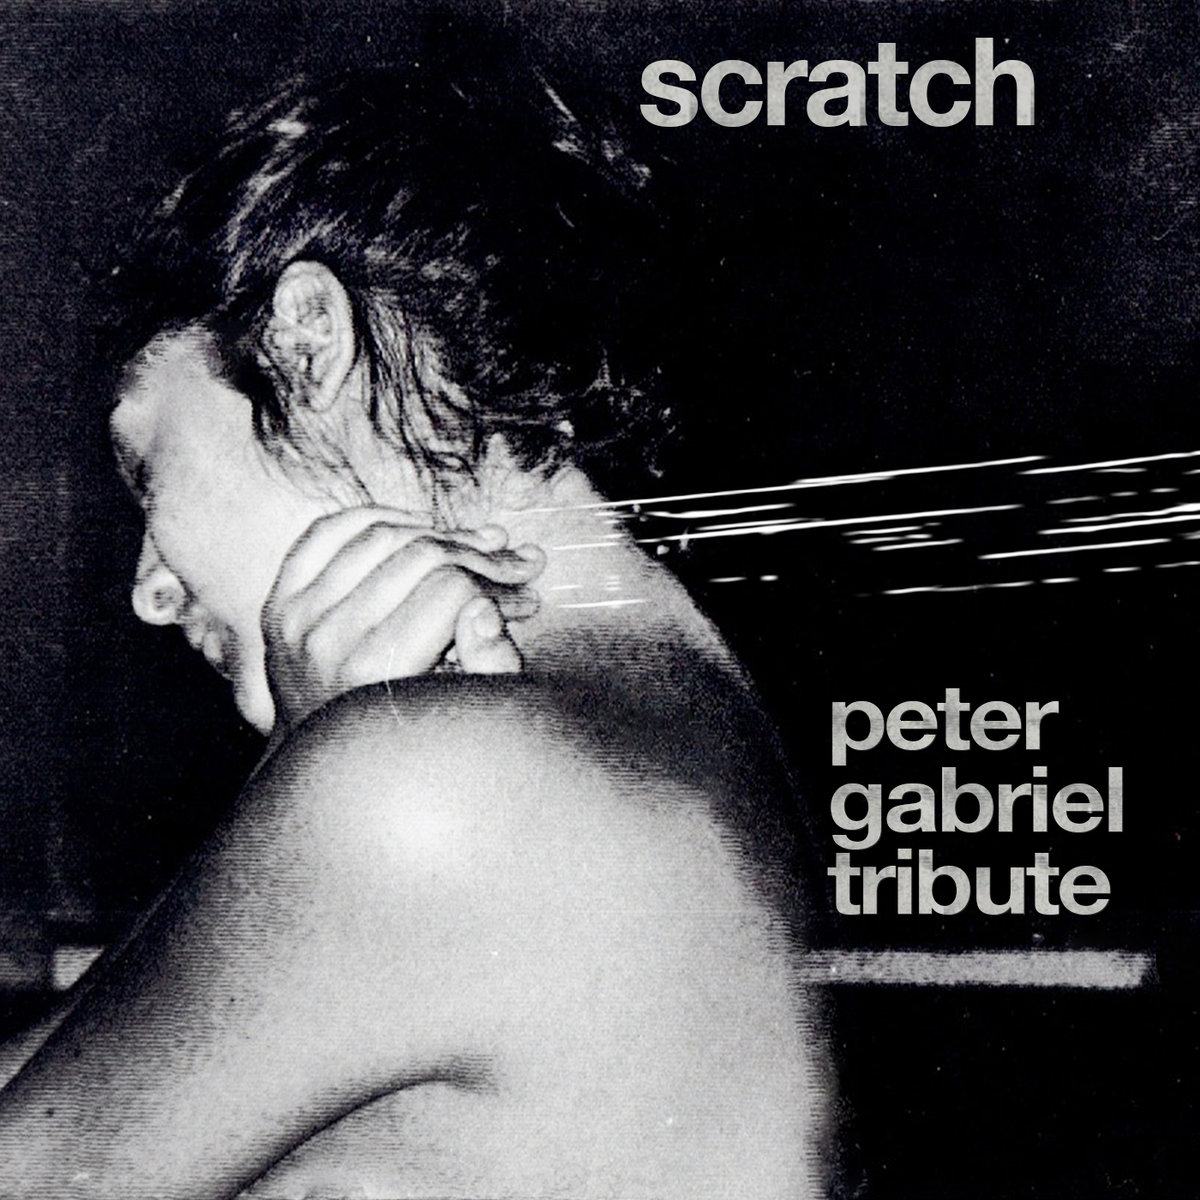 PETER GABRIEL Scratch Tribute album